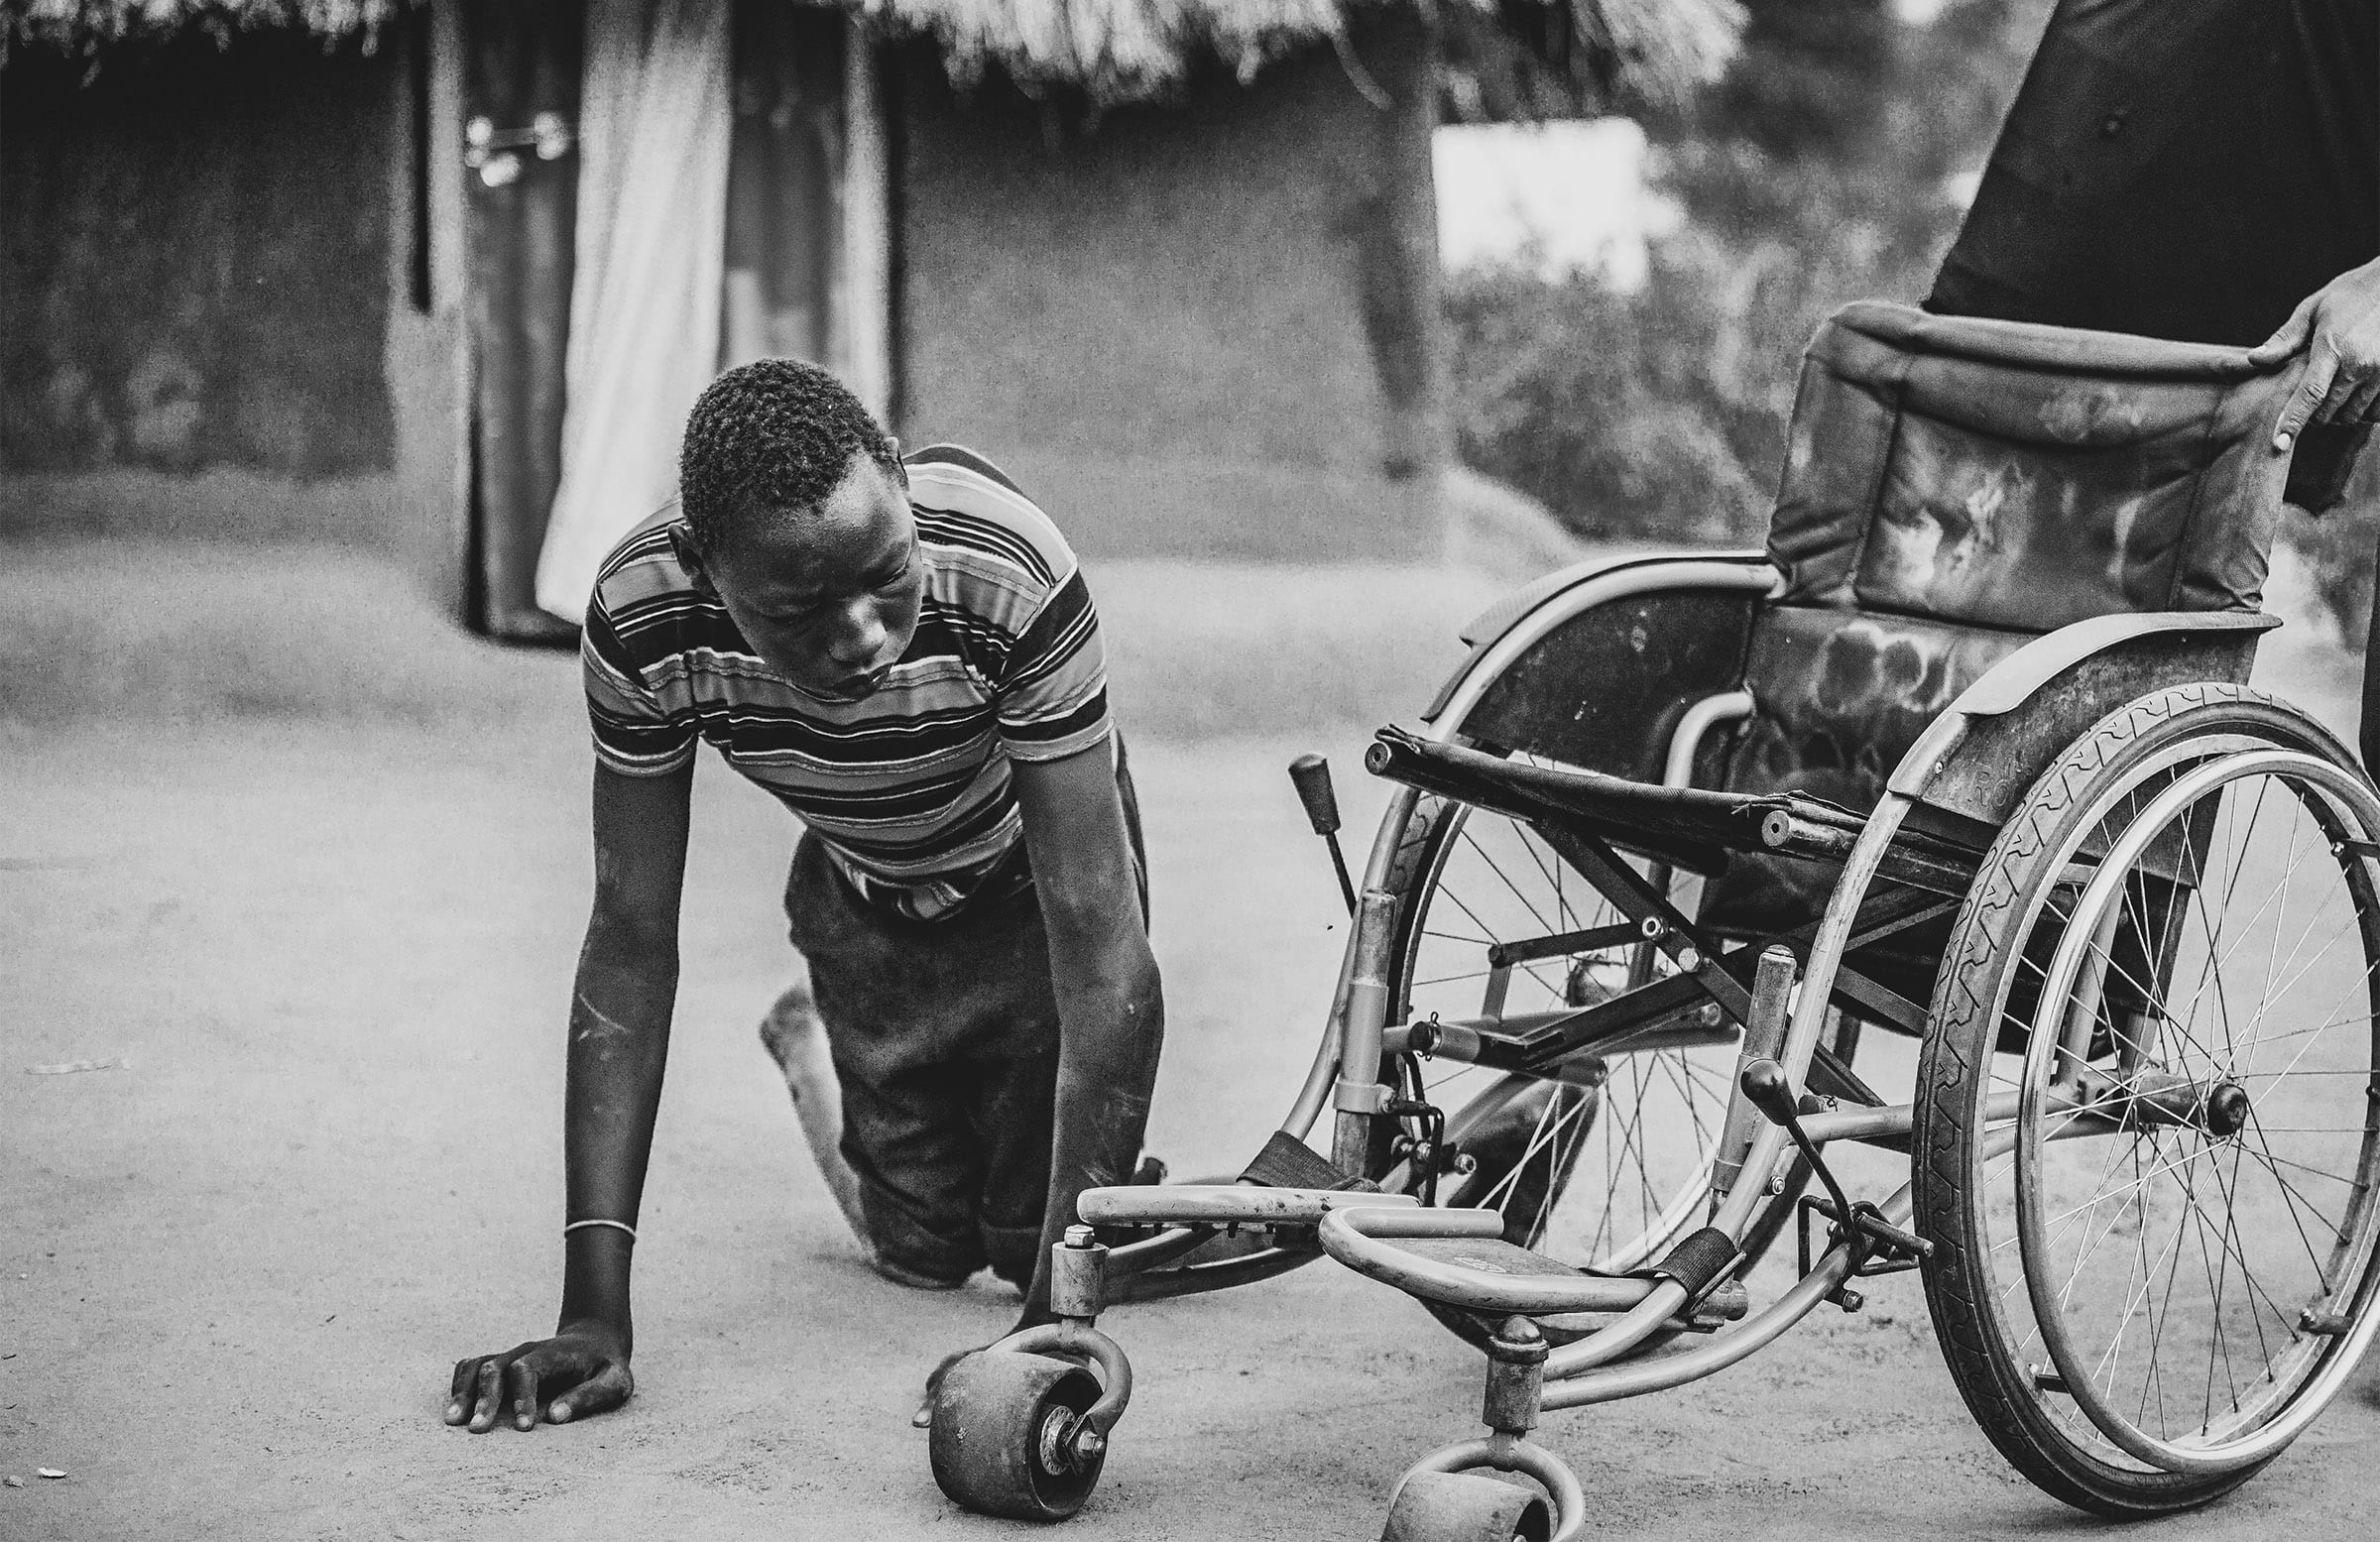 a boy prepares to get onto a wheelchair, with a hut in the background